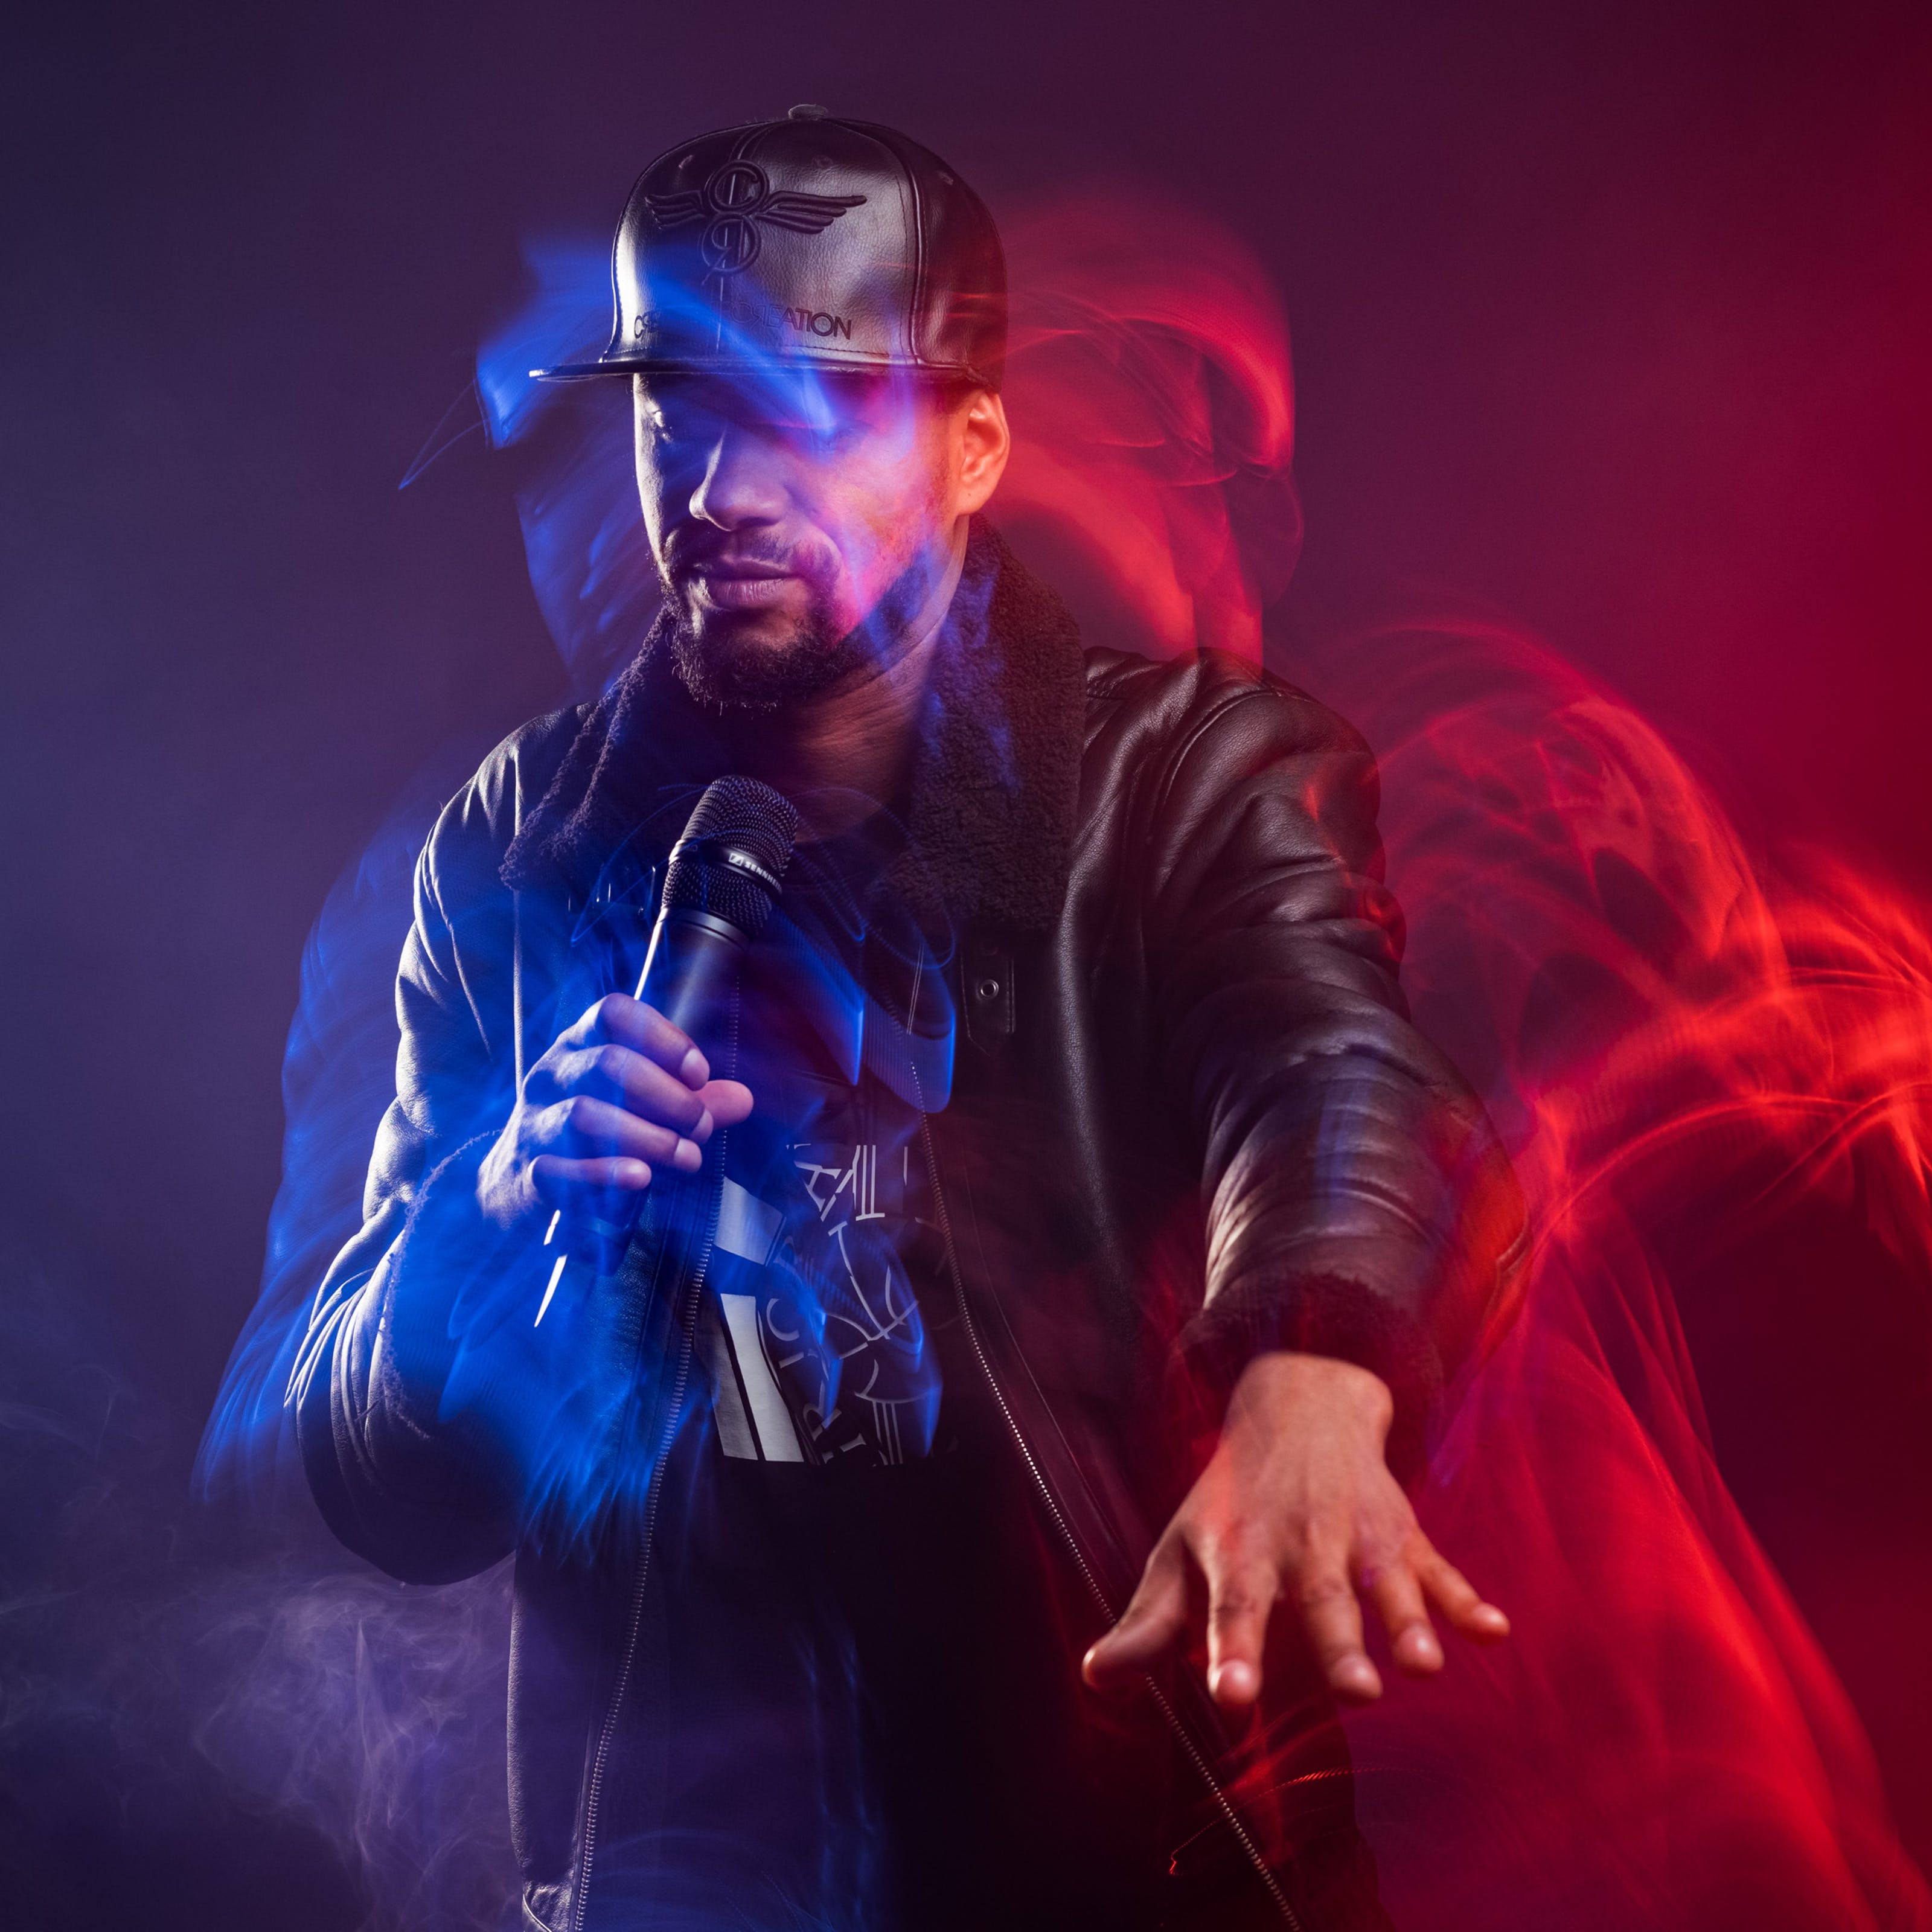 A male rap artist dressed in a black leather hat and jacket is holding a microphone, dancing with his arm outstretched in front of him. The room is filled with smoke and blue and red lighting effects highlight his movement.